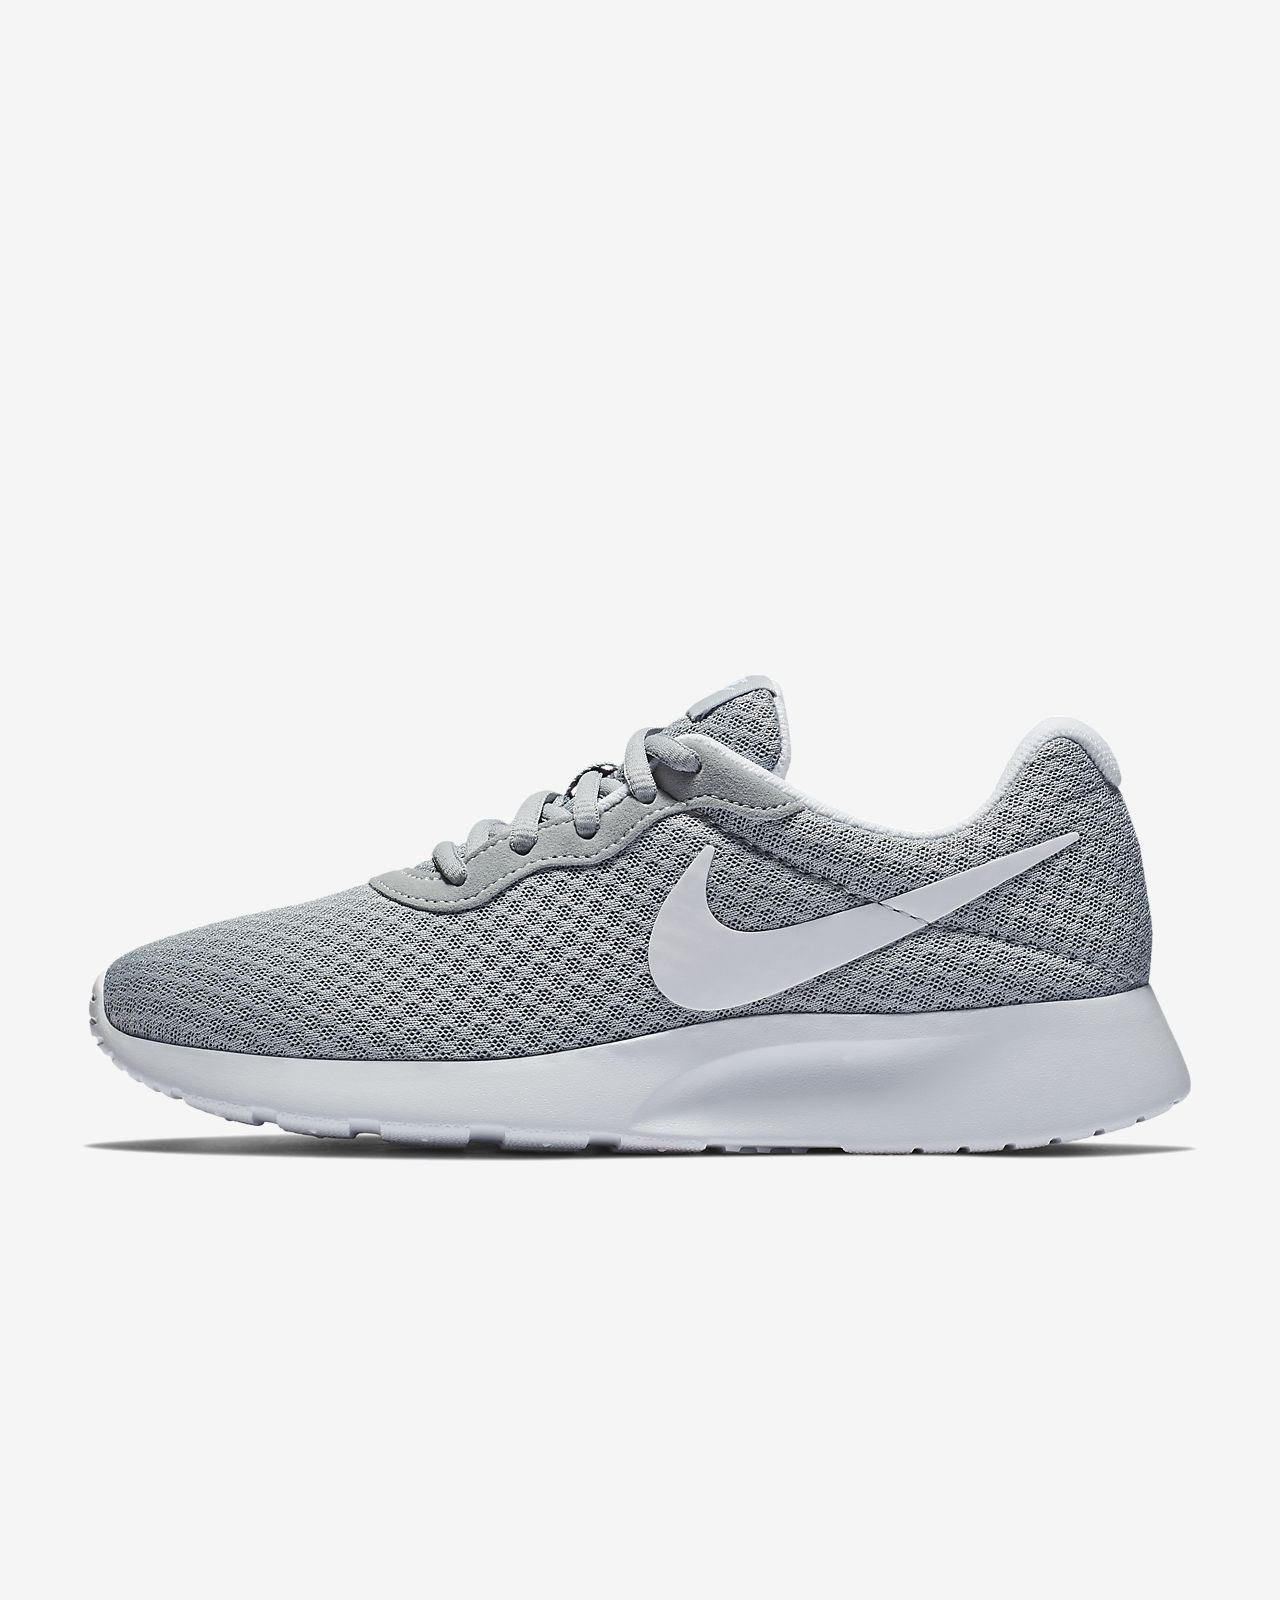 ac115011033 Low Resolution Nike Tanjun Women s Shoe Nike Tanjun Women s Shoe